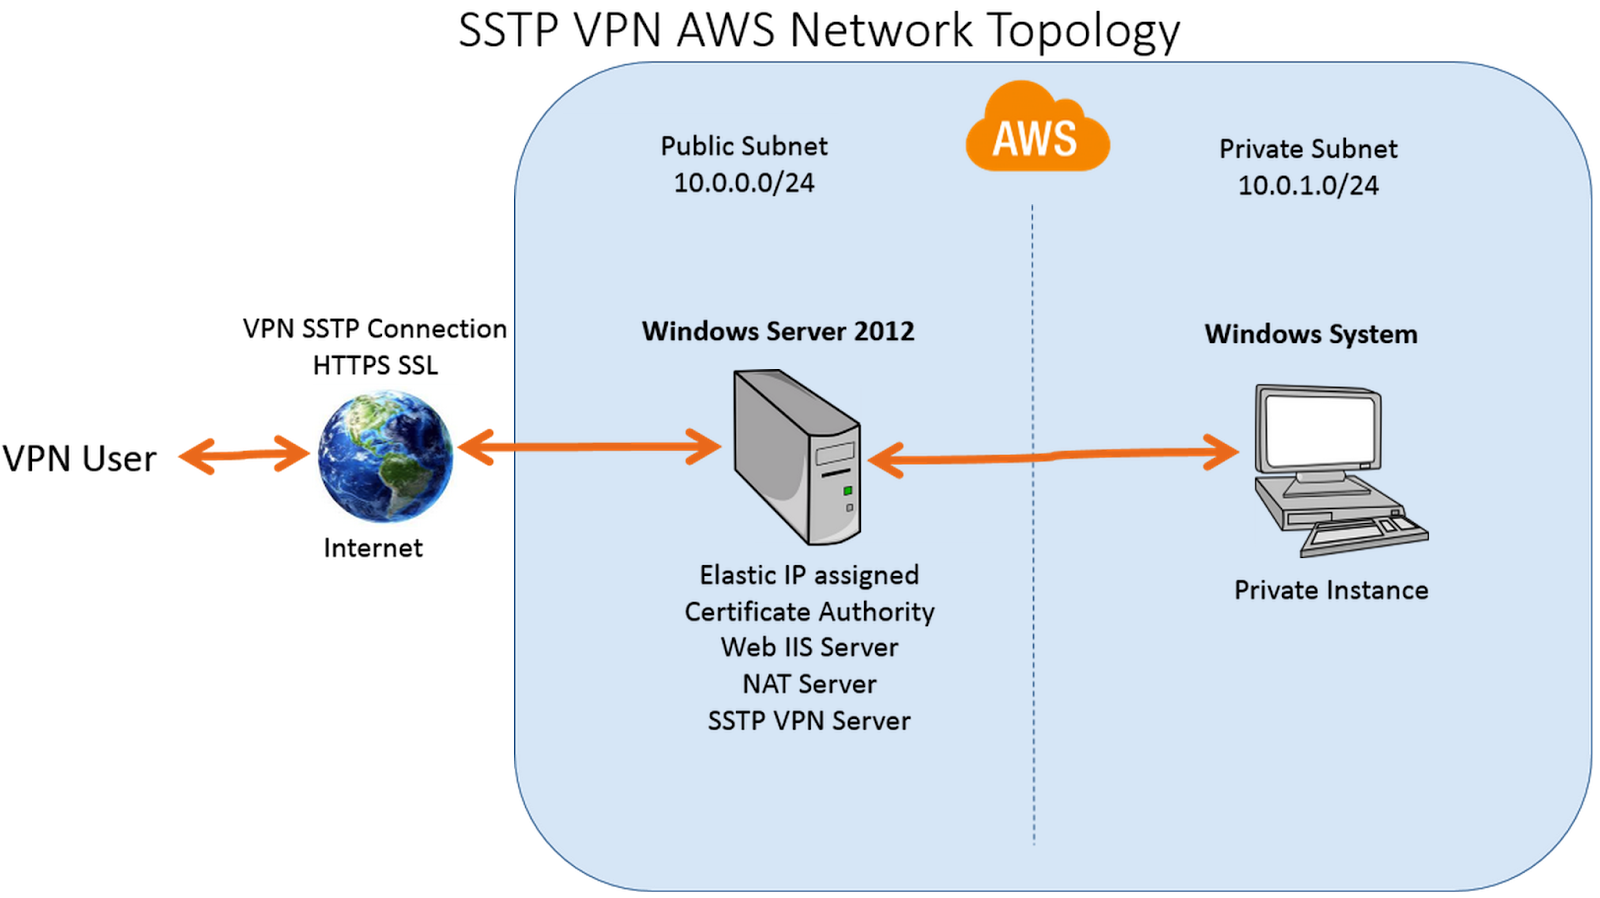 Dtechnotes Amazon Aws Cloud Private Network Behind Windows 2012